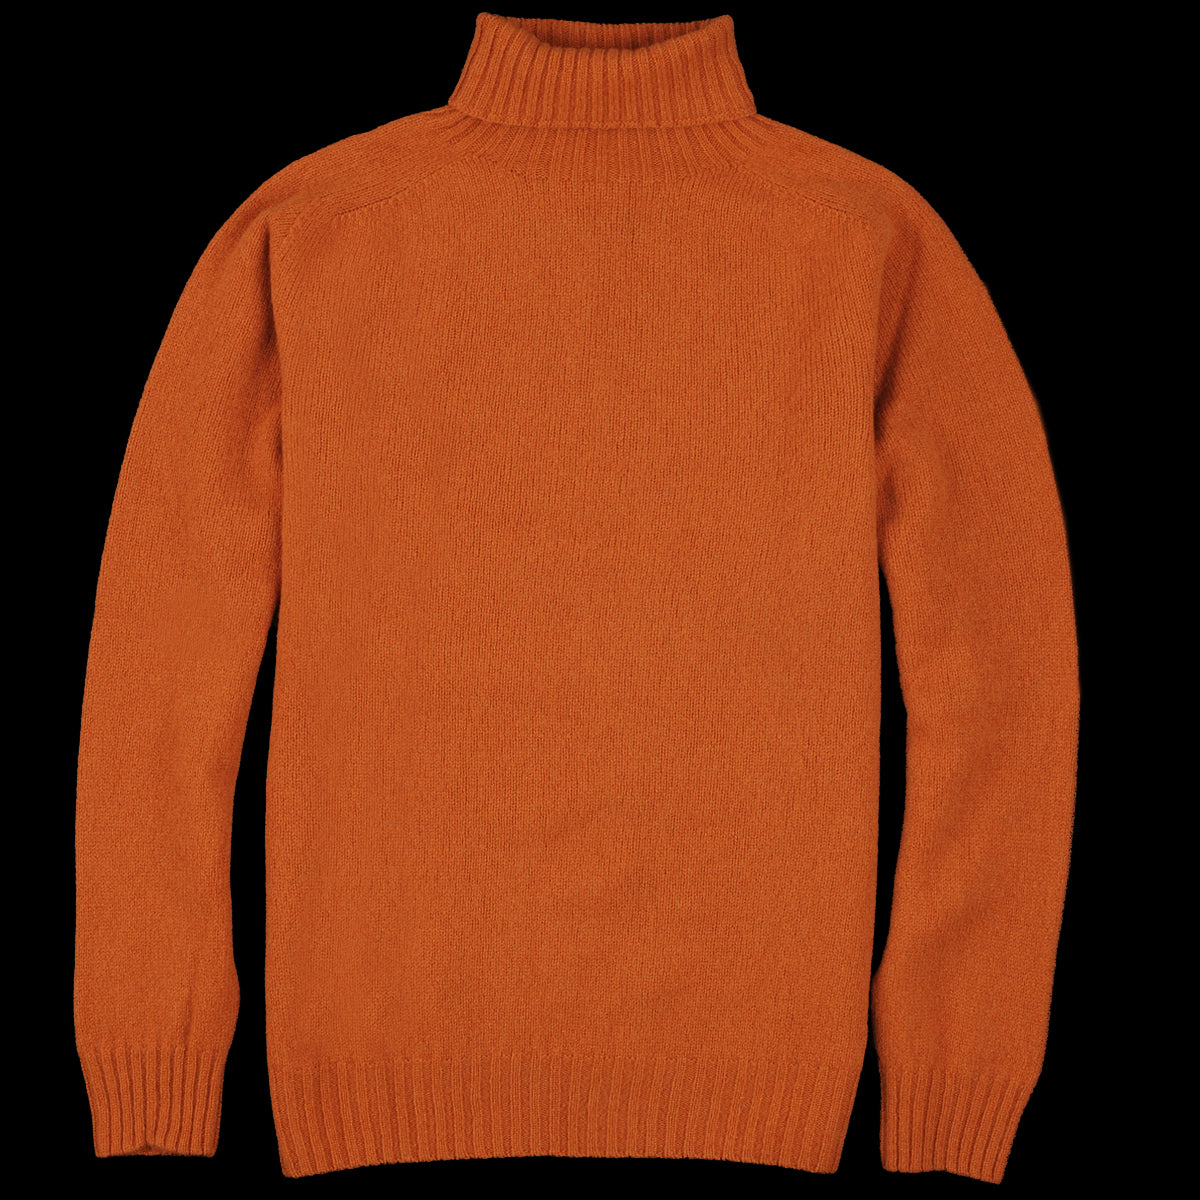 Harley Of Scotland For Unionmade Geelong Turtleneck Sweater In